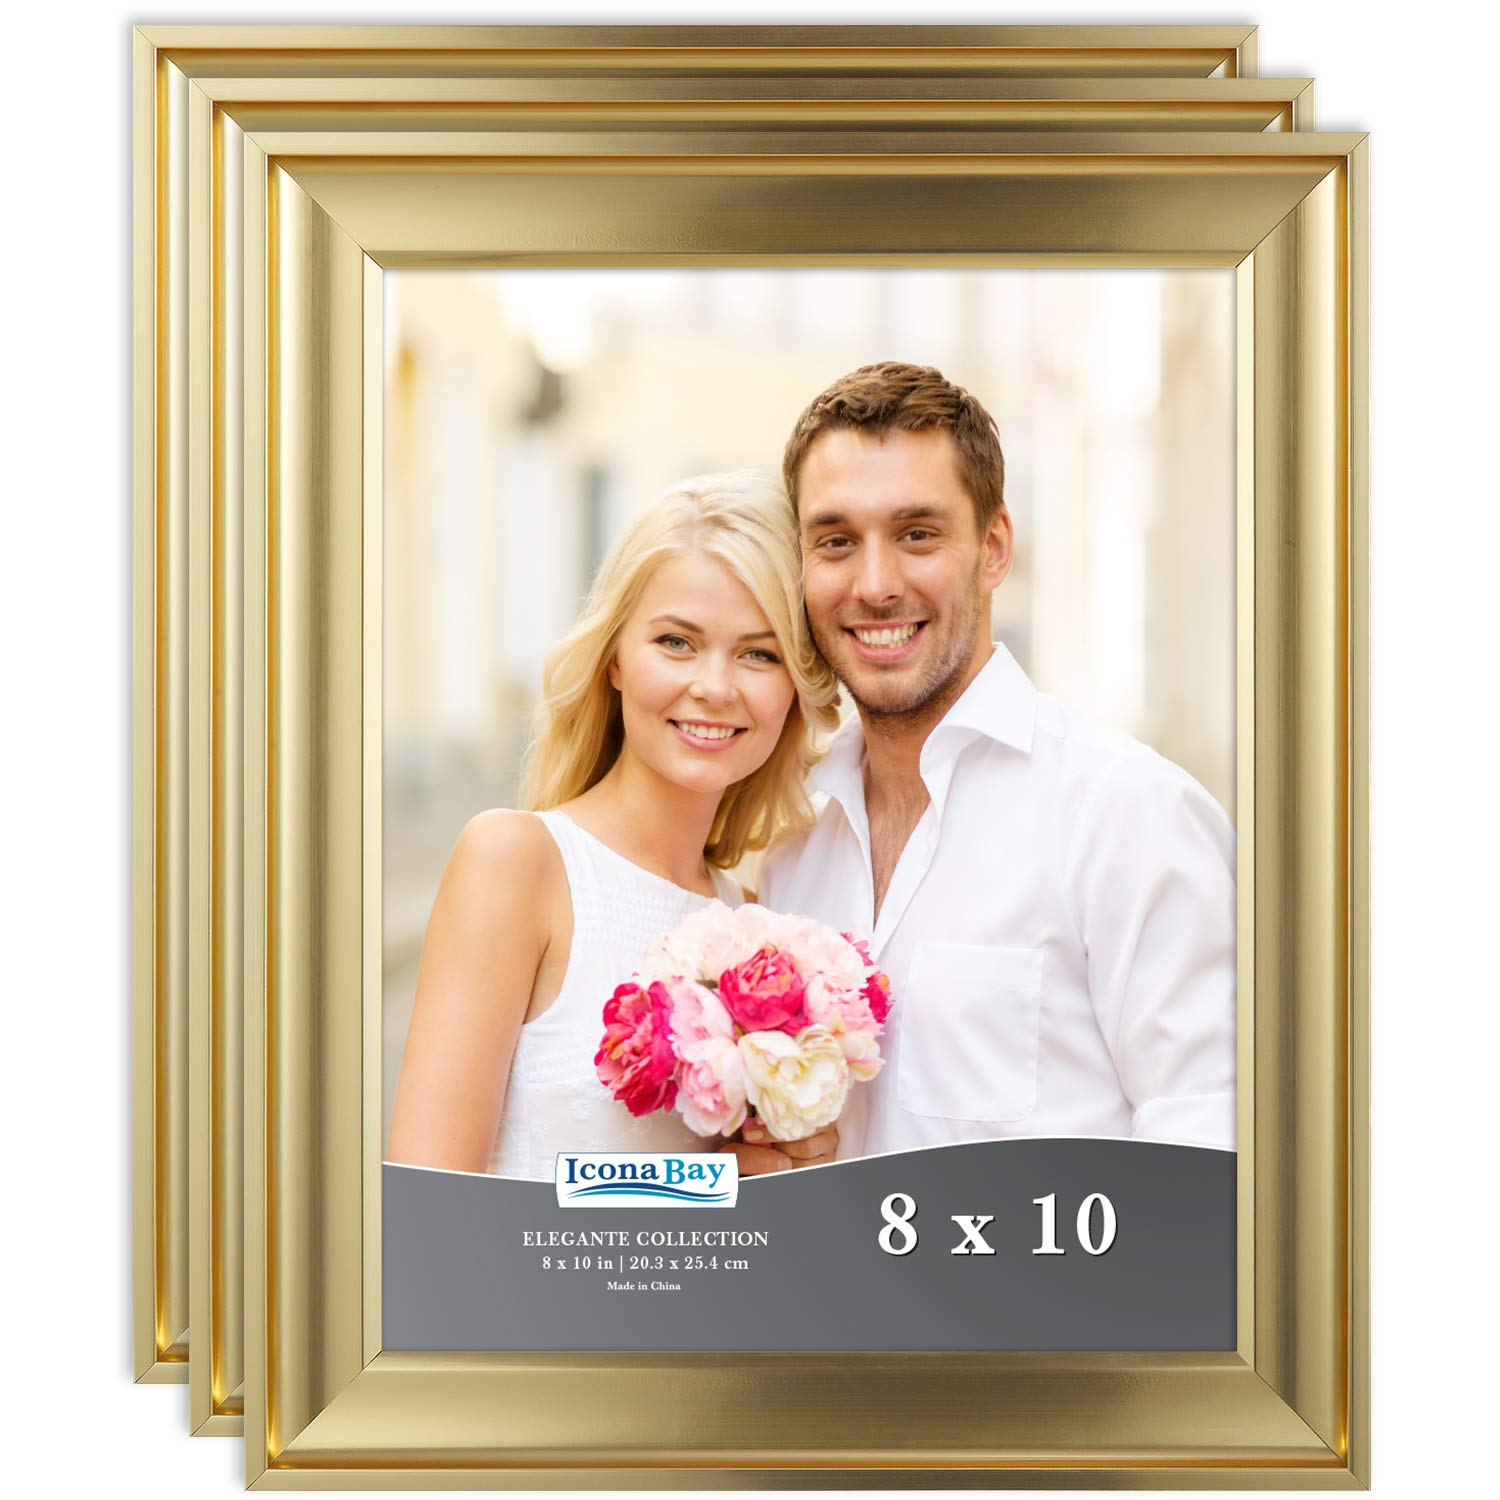 Icona Bay 8x10 Picture Frame (3 Pack, Gold), Gold Photo Frame 8 x 10, Wall Mount or Table Top, Set of 3 Elegante Collection